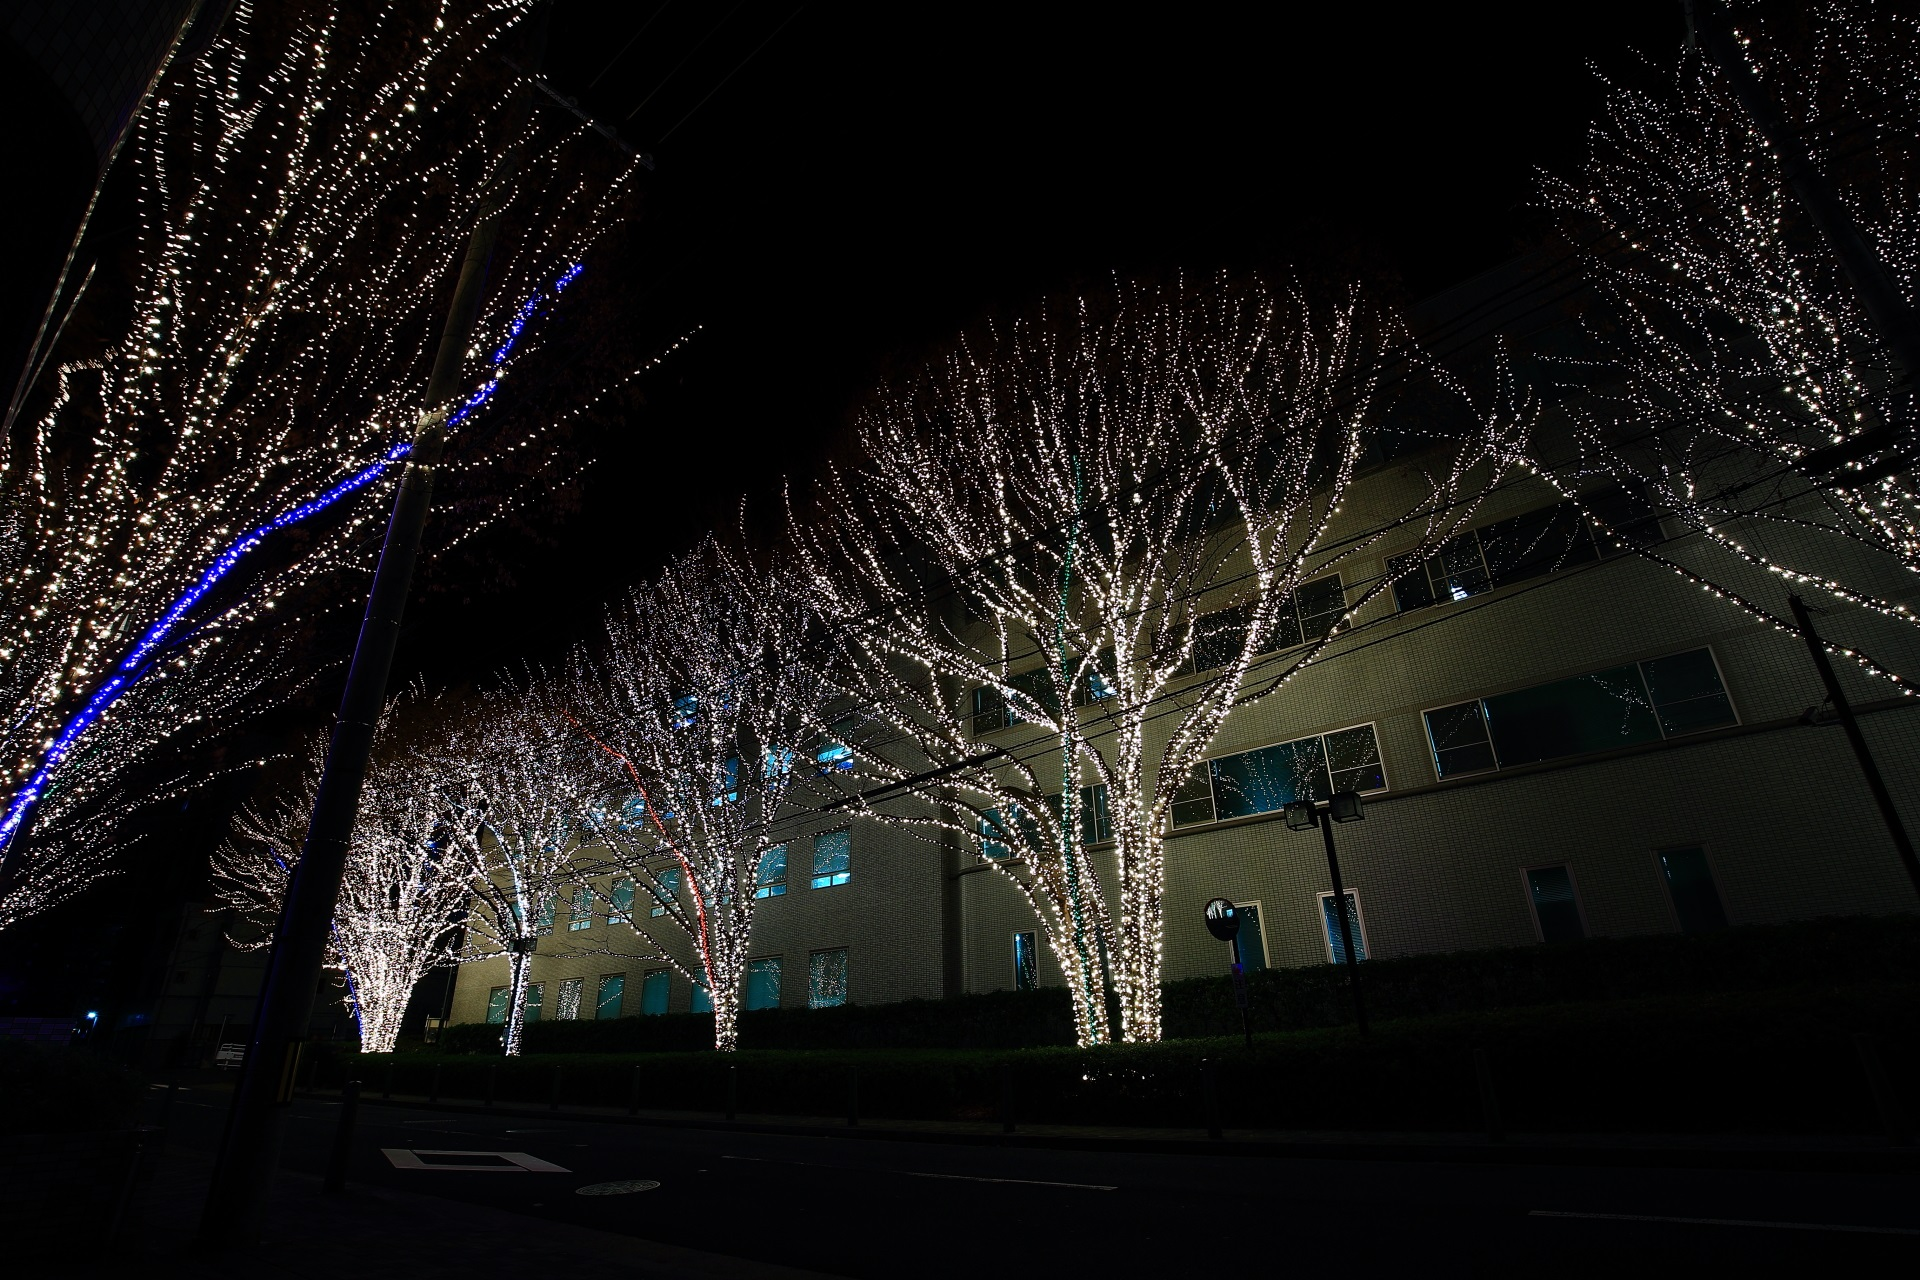 Kyoto illumination by ROHM Semiconductor